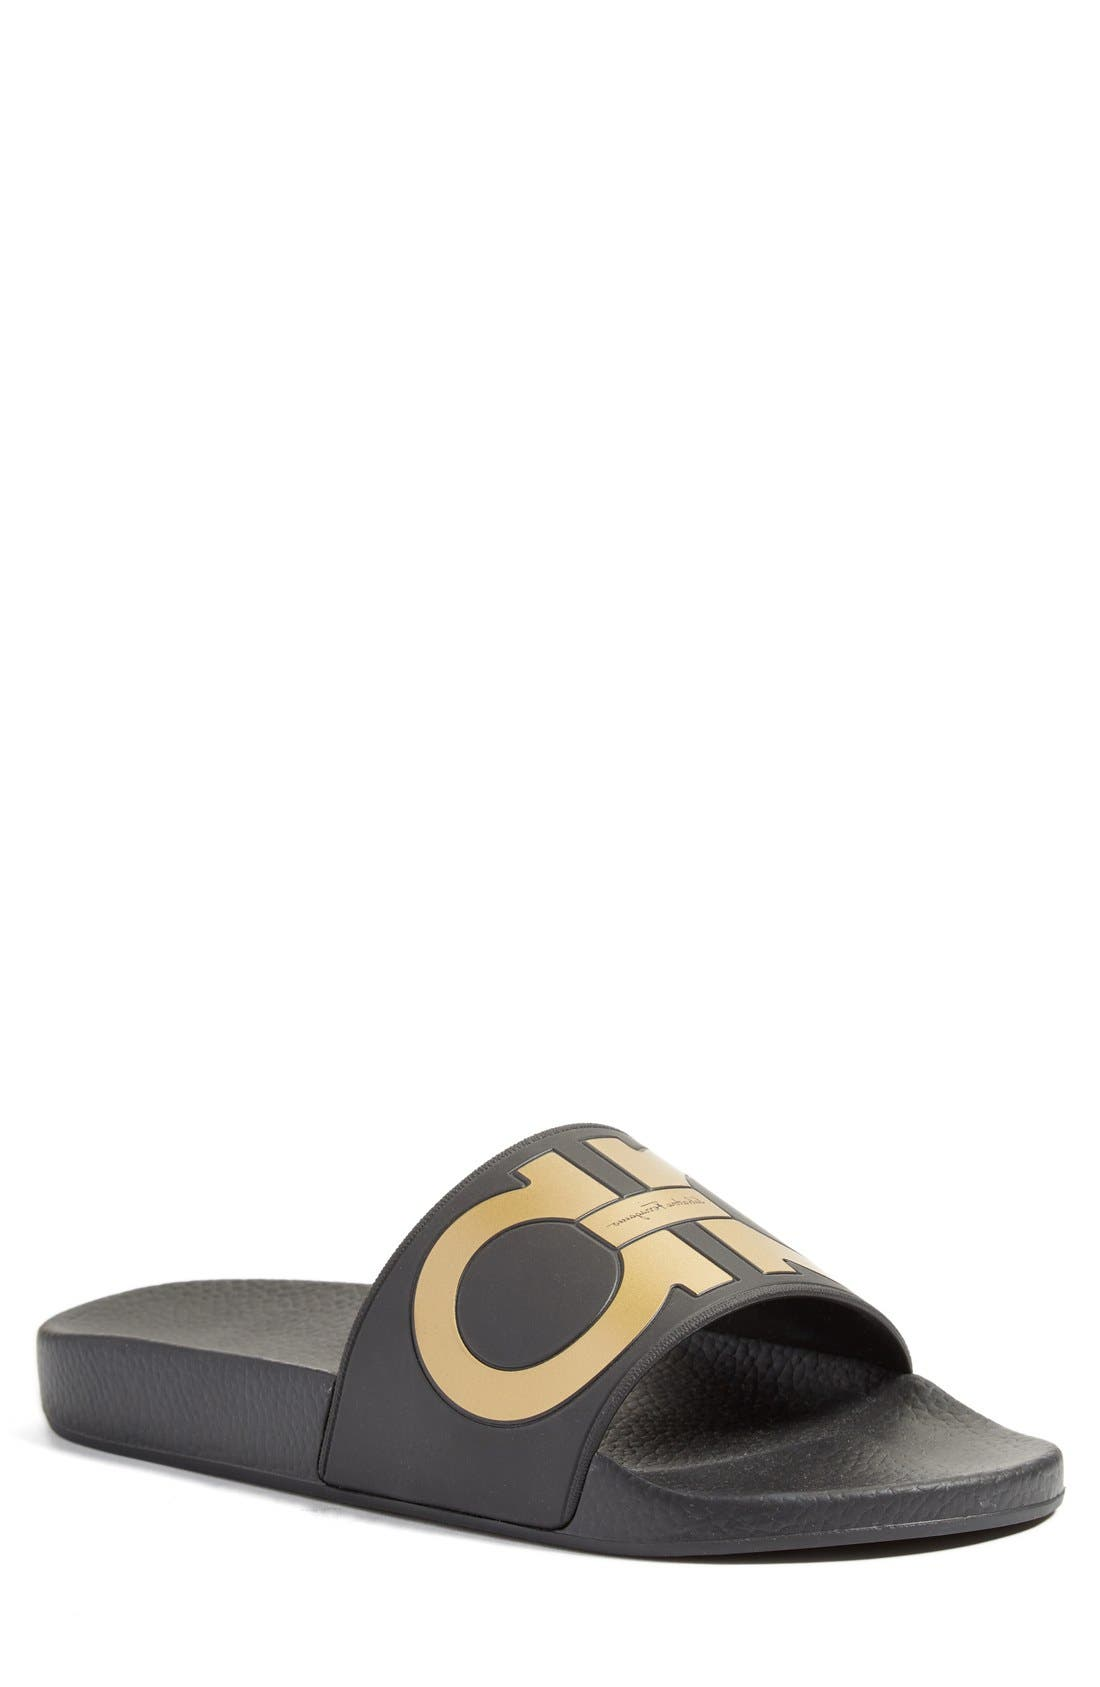 Alternate Image 1 Selected - Salvatore Ferragamo 'Groove' Slide Sandal (Men)